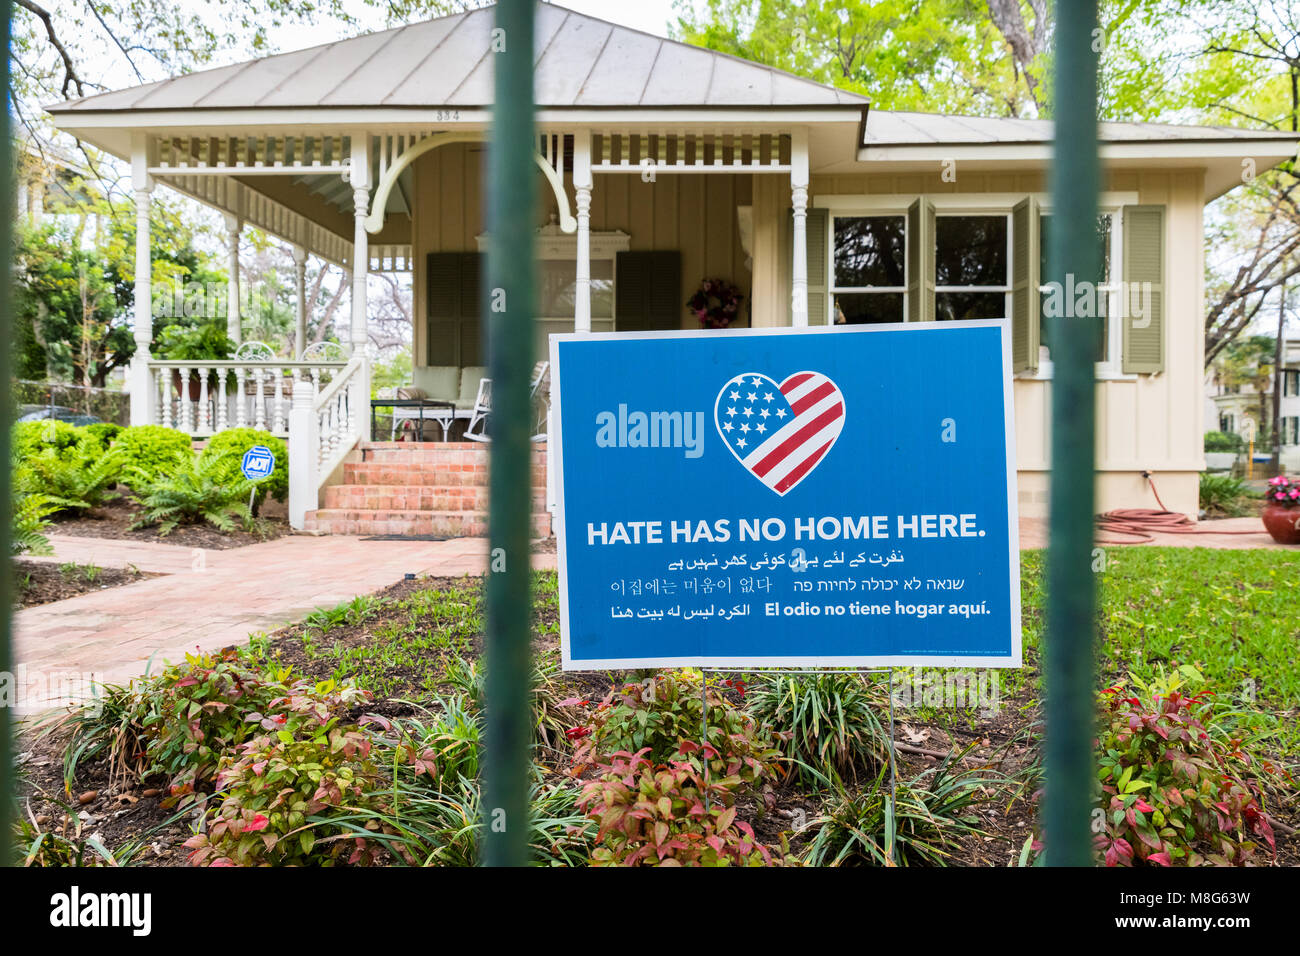 SAN ANTONIO, TEXAS - March 14, 2018:  Hate Has No Home Here Sign in Front Yard of Home. The project promotes just - Stock Image